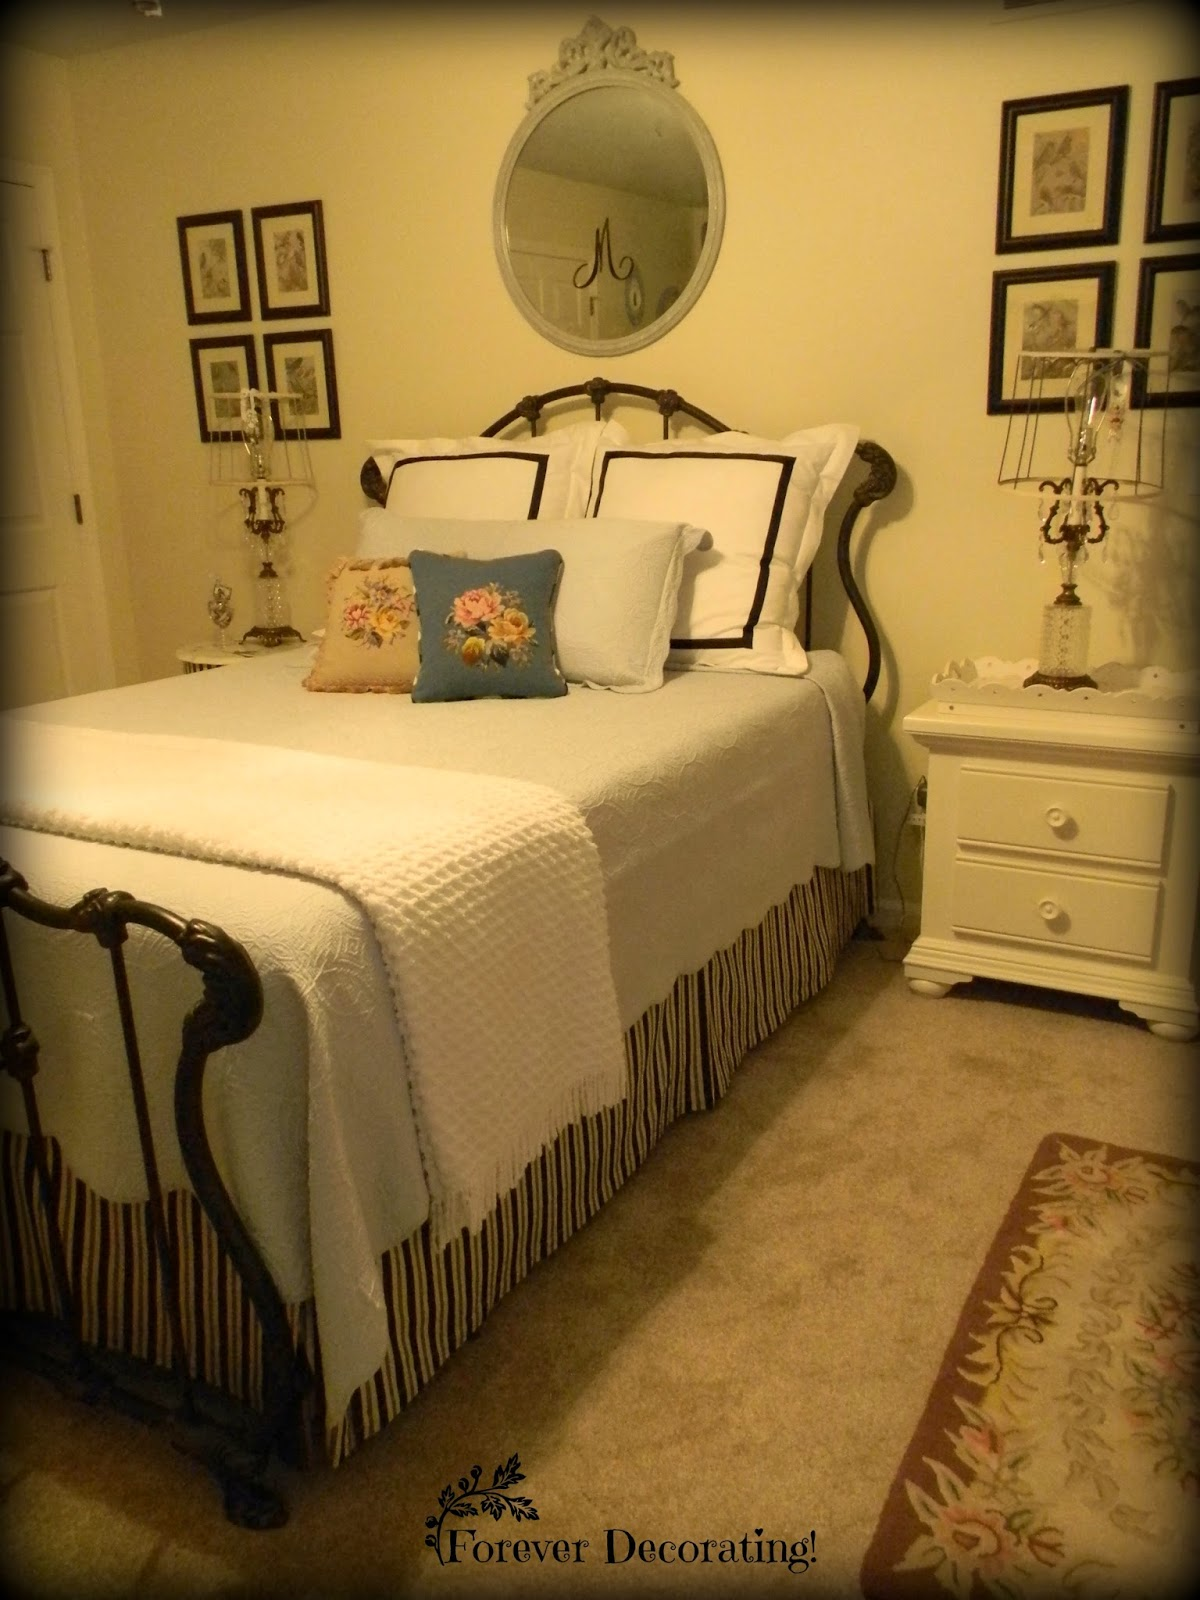 Forever Decorating Guest Bathroom Tour: Forever Decorating!: No Cost Decorating